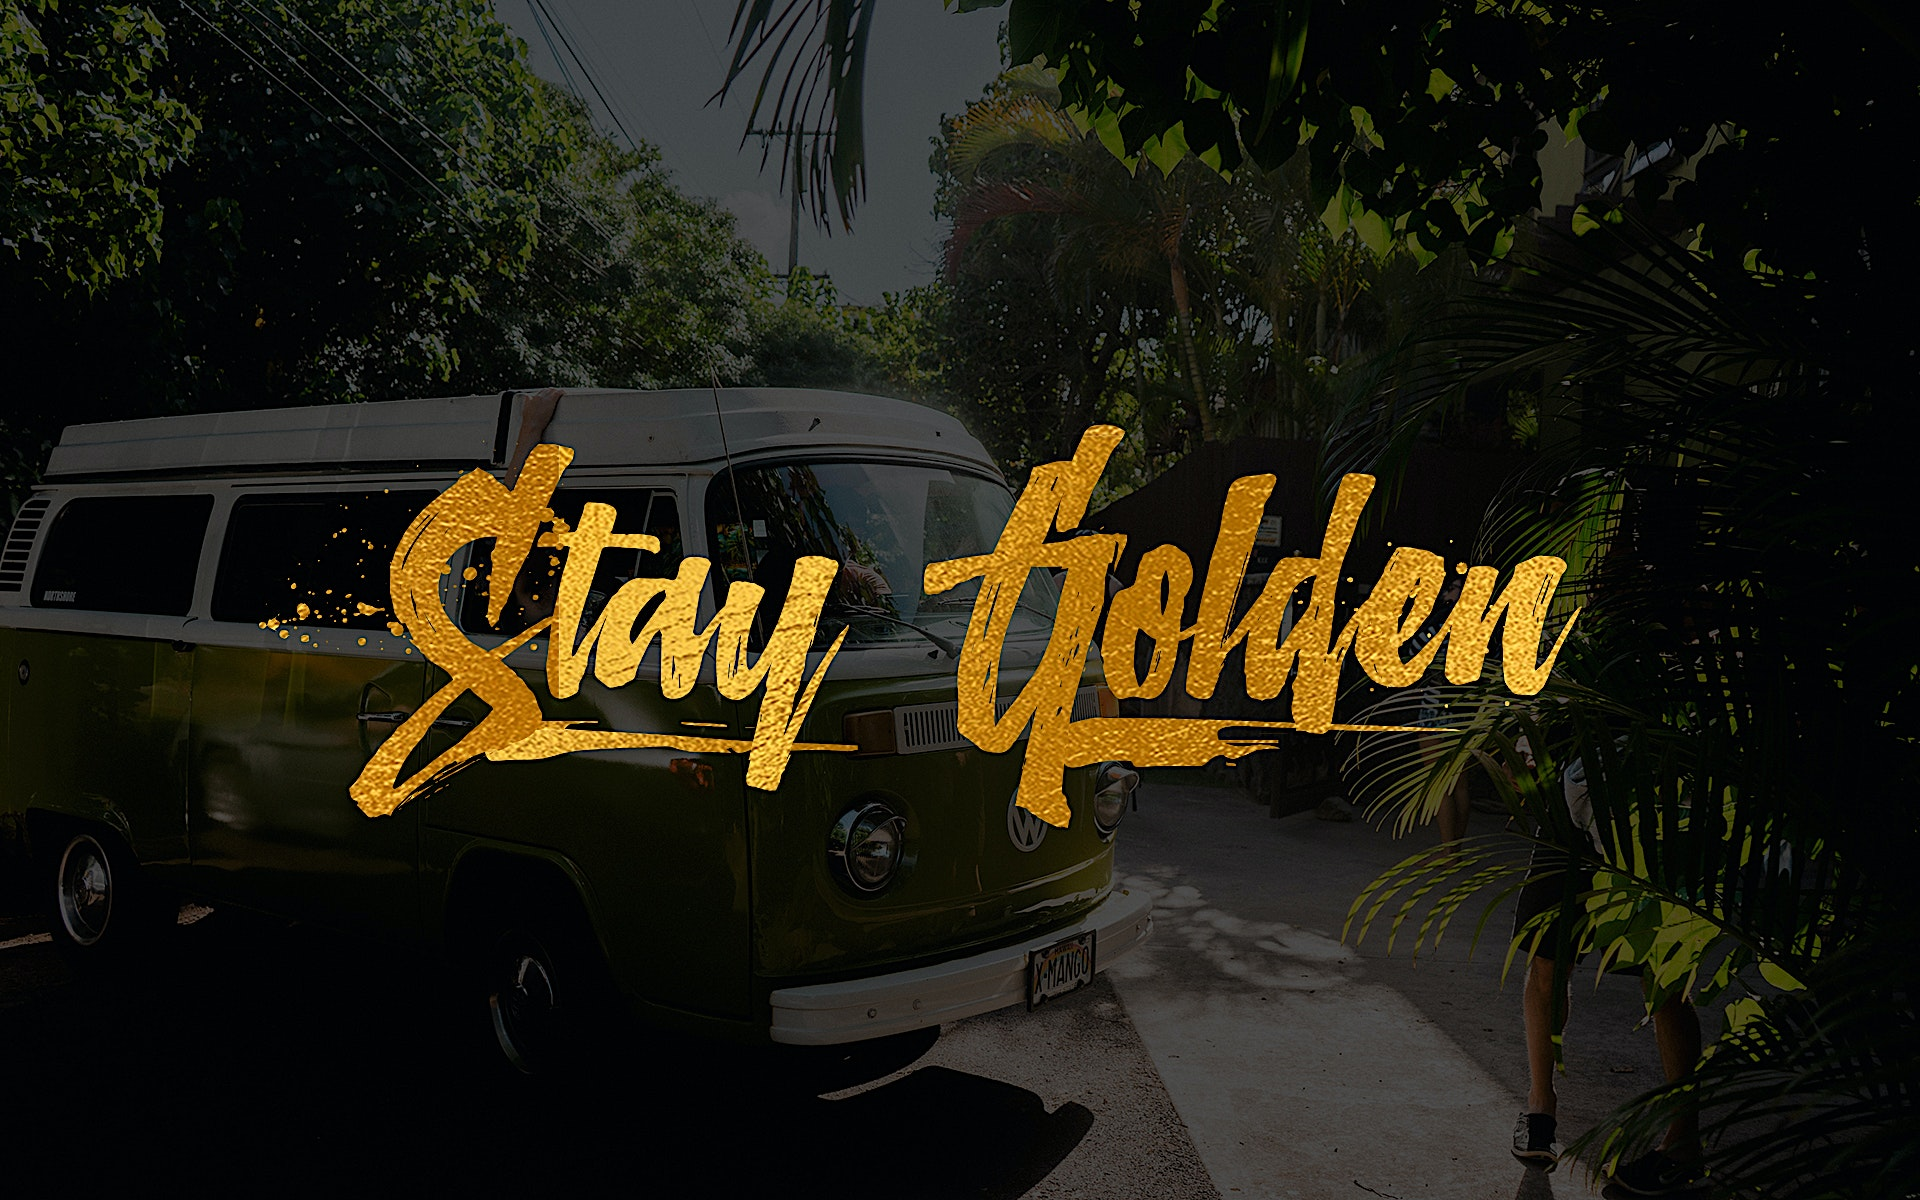 Meaning of Stay Golden